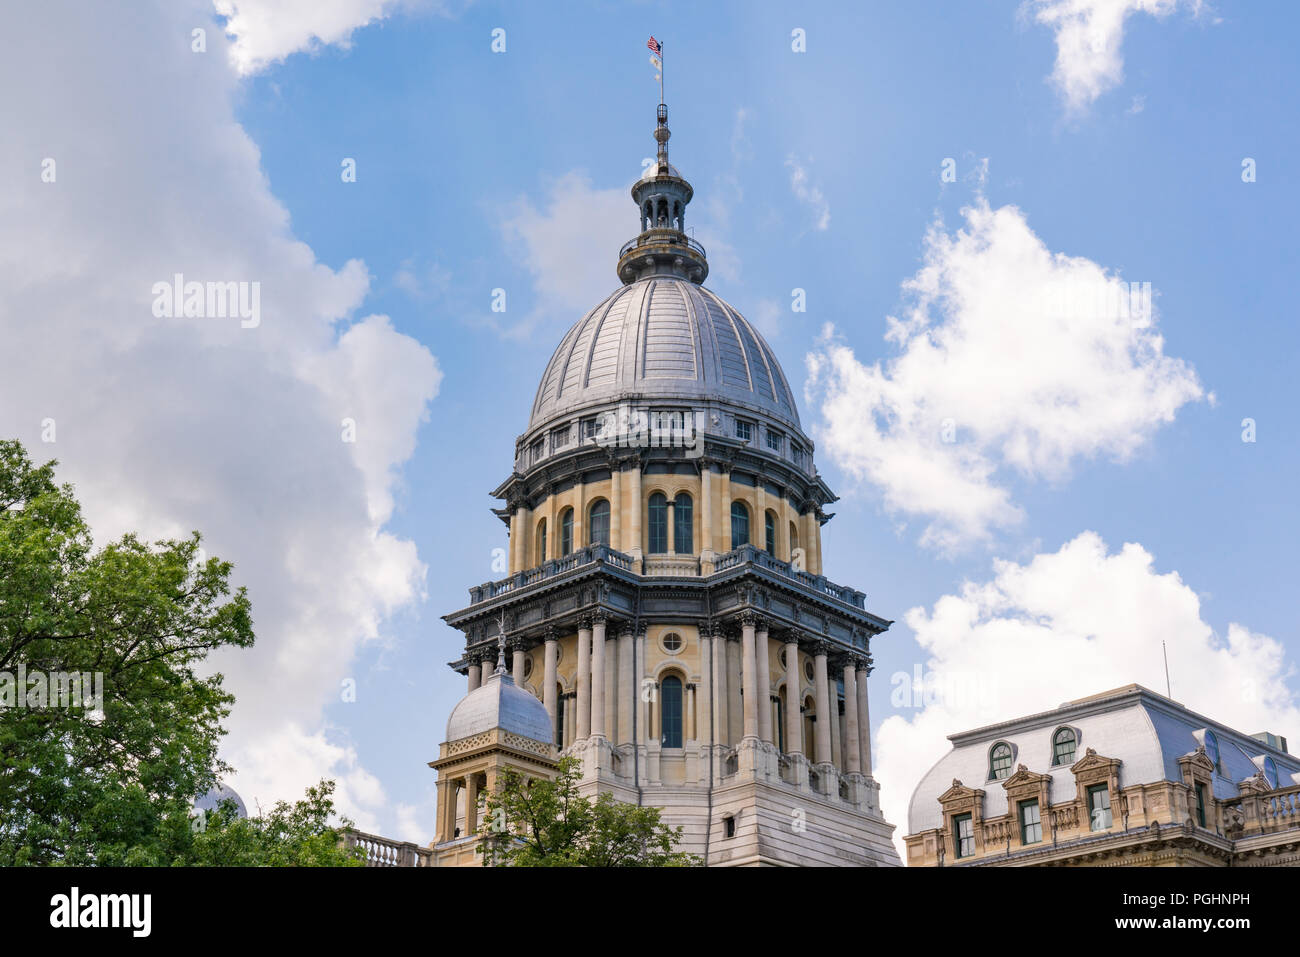 Dome of the Illinois State Capital Building in Springfield, Illinois - Stock Image